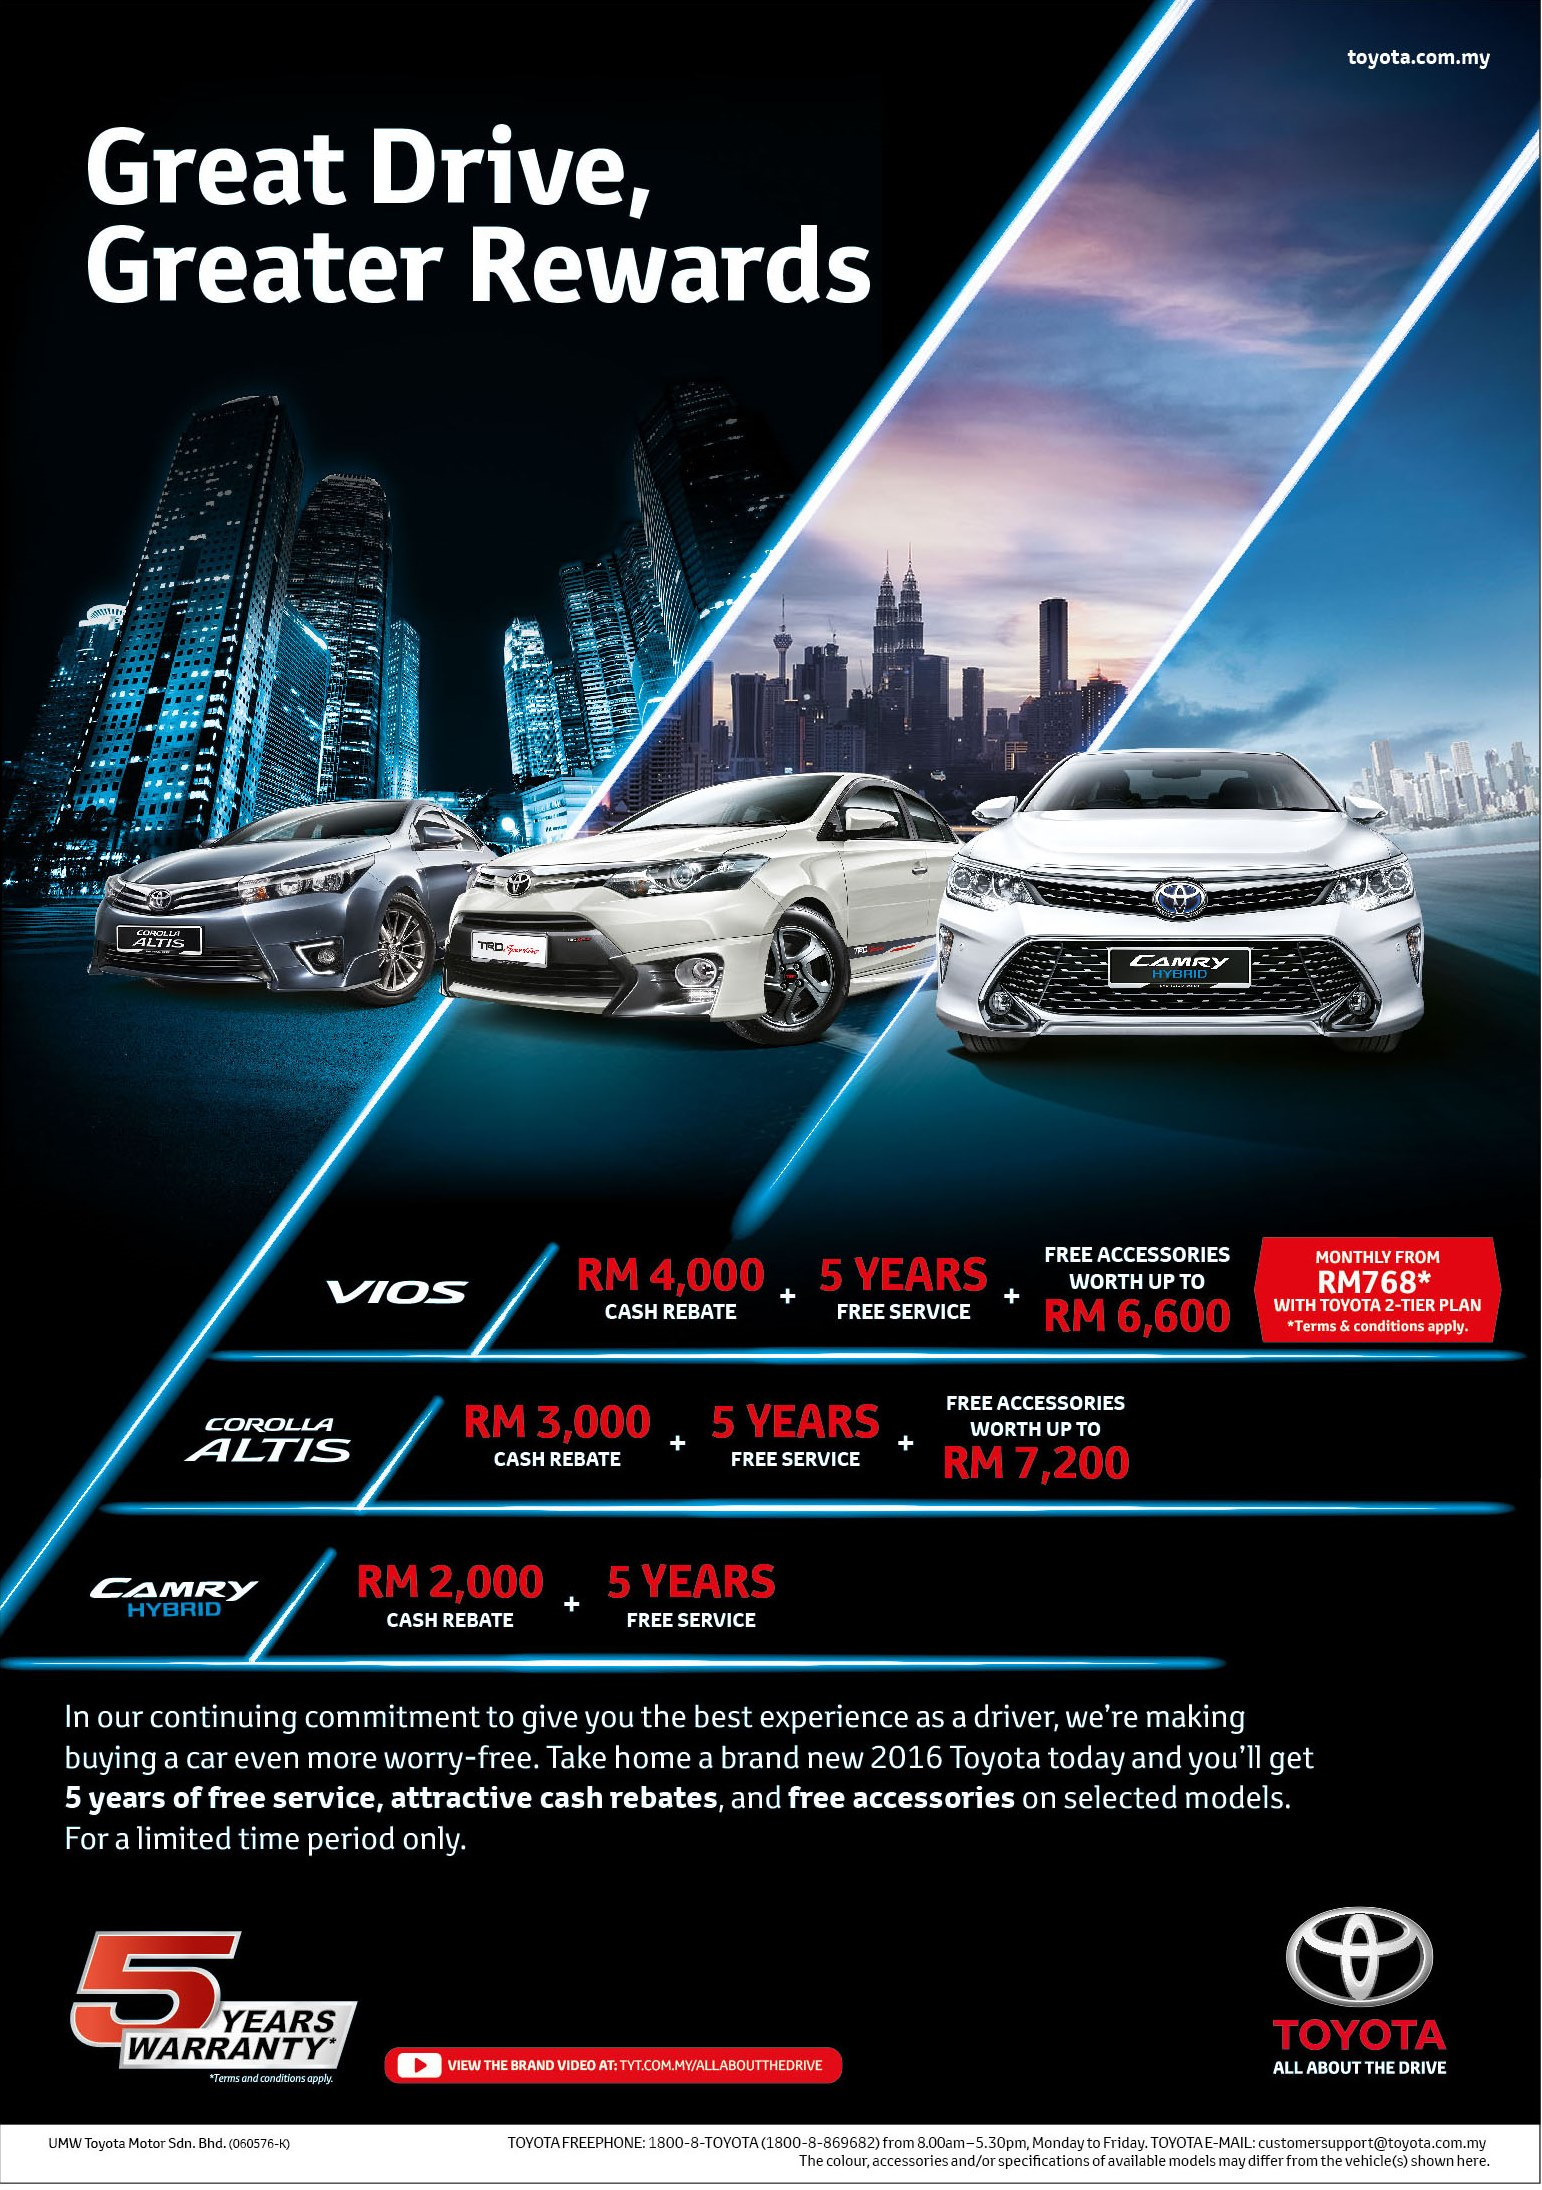 Five Star Toyota >> Toyota Great Rewards – five-year free service package, free accessories, rebates up to RM4,000 ...